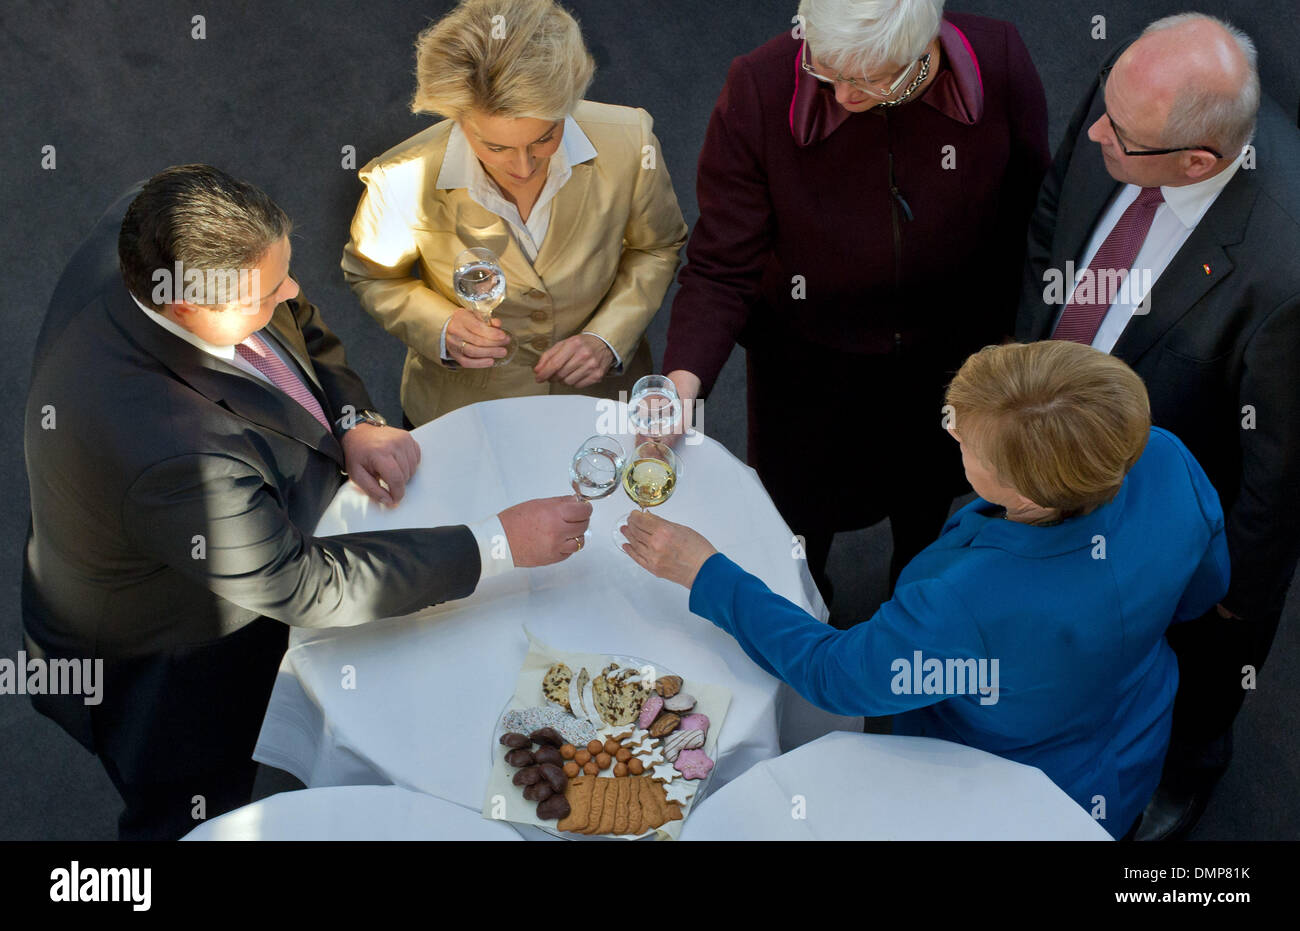 Berlin, Germany. 16th Dec, 2013. Chairman of the SPD Sigmar Gabriel (L-R), designated German Minister of Defence Ursula von der Leyen (CDU), CSU regional faction leader Gerda Hasselfeldt, acting German Chancellor Angela Merkel (CDU) and CDU/CSU parliamentary group leader Volker Kauder clink glasses after the signing of the coalition agreement at the Paul-Loebe-Haus of the German 'Bundestag' parliament in Berlin, Germany, 16 December 2013. Germany will be governed by a coalition of CDU/CSU and SPD for the third time in its history. Photo: Tim Brakemeier/dpa/Alamy Live News - Stock Image